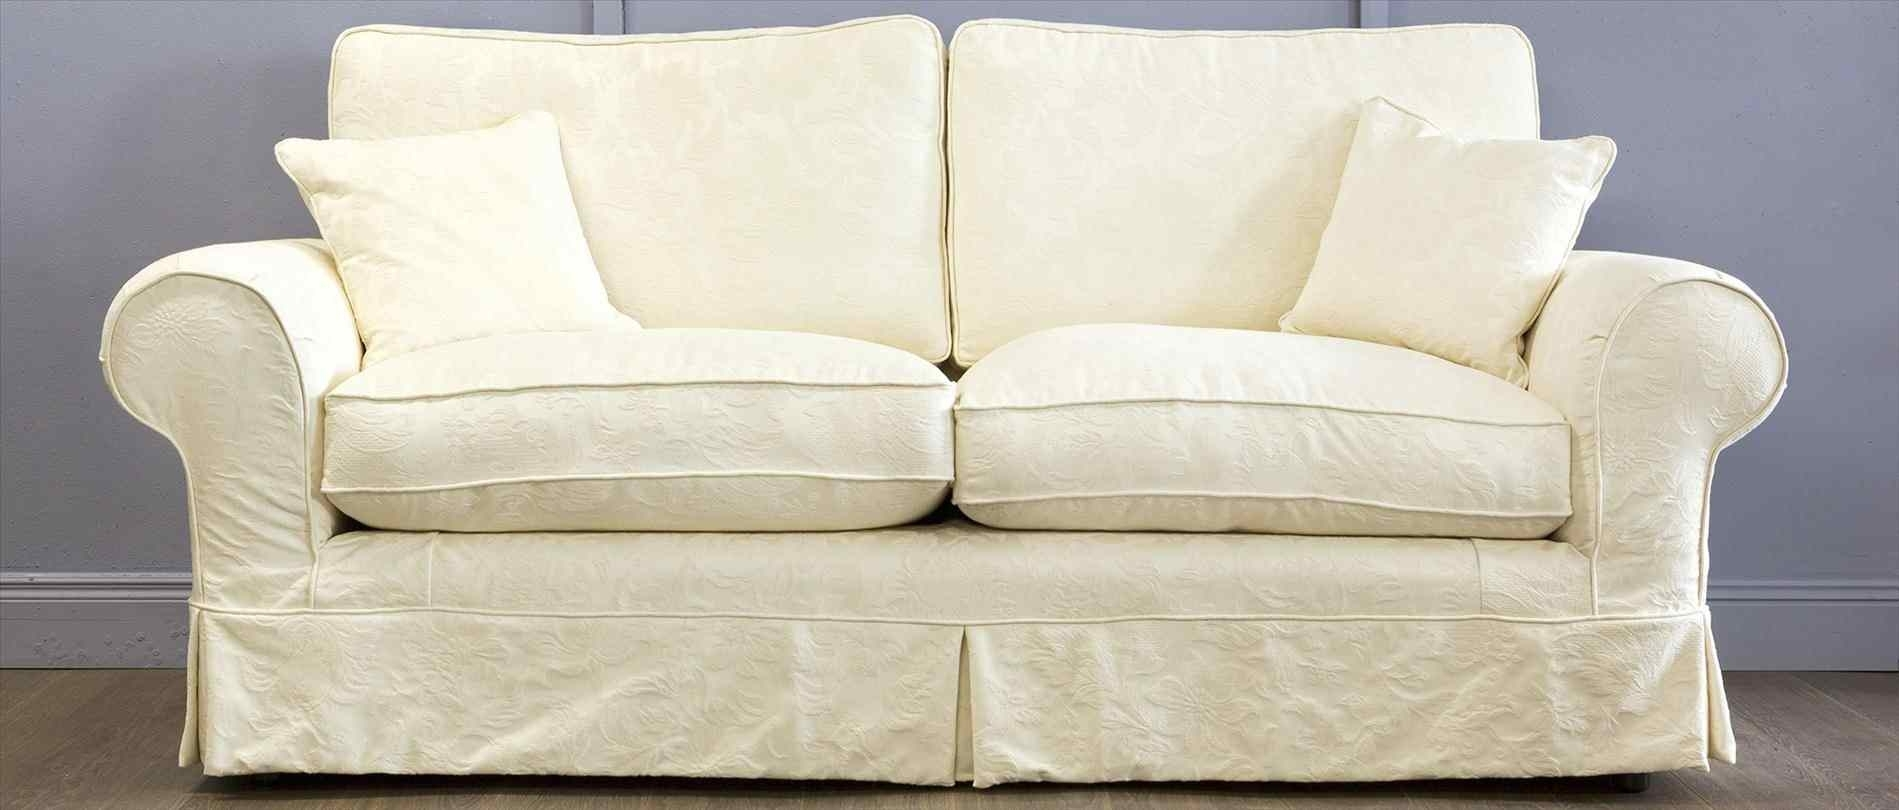 Sofa : Luxurious Sofa With Washable Covers Removable Ideas Amazing For Sofas With Removable Cover (View 3 of 10)